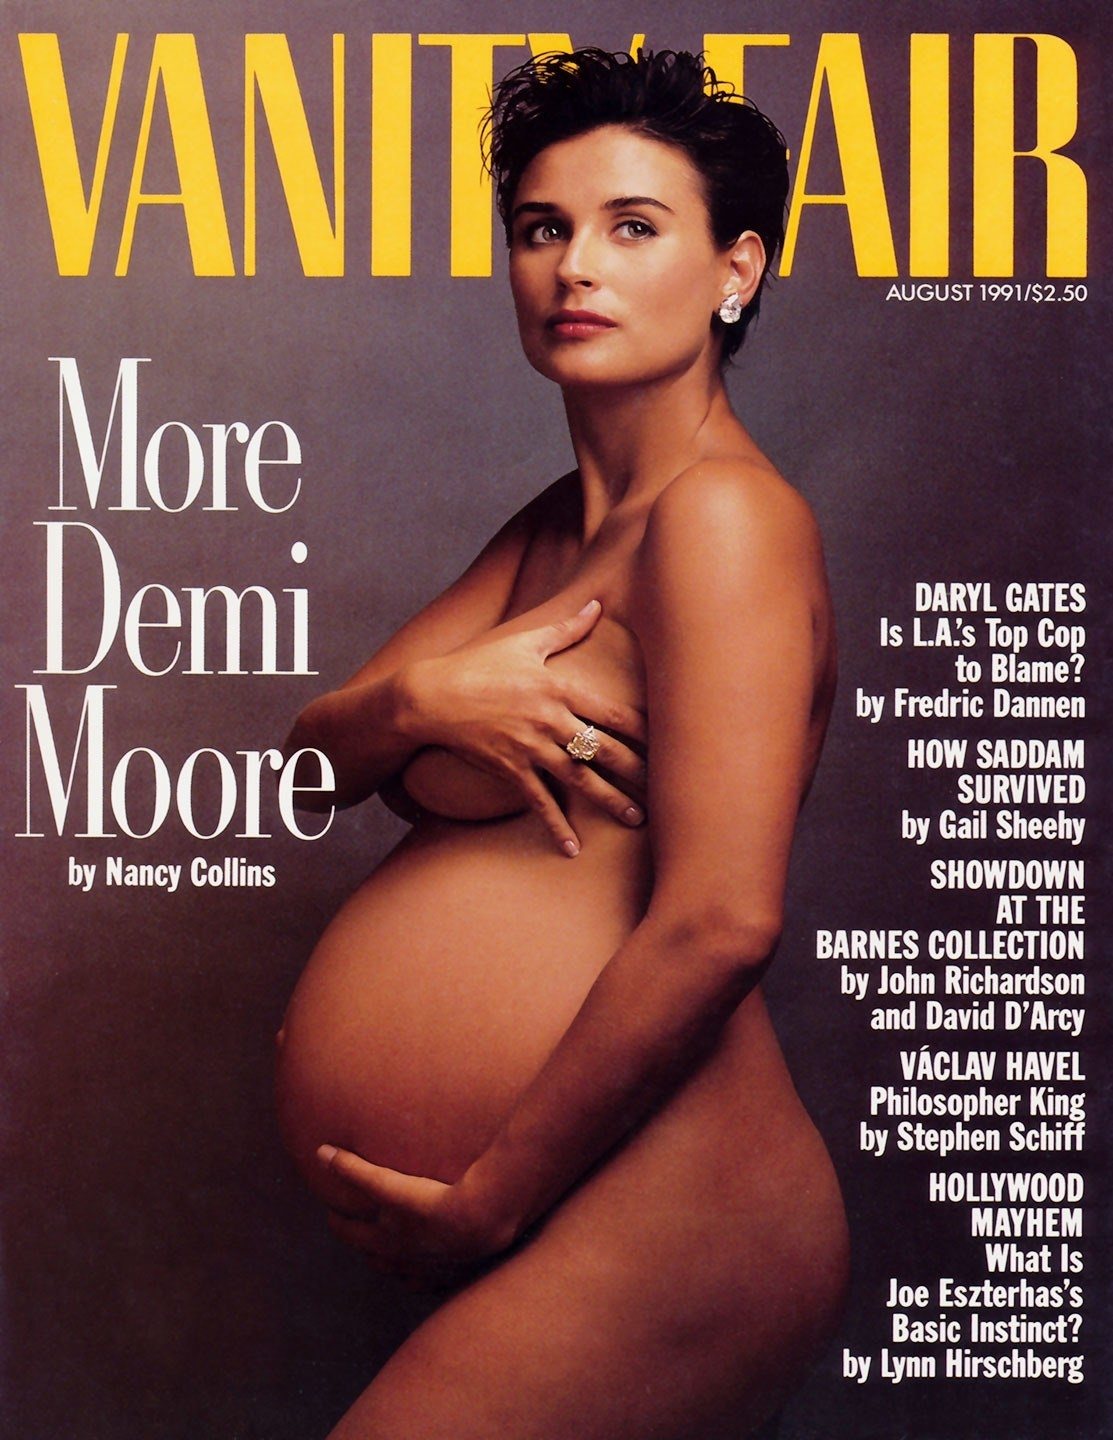 Cover of Vanity Fair's August 1991 issue with Demi Moore on the cover